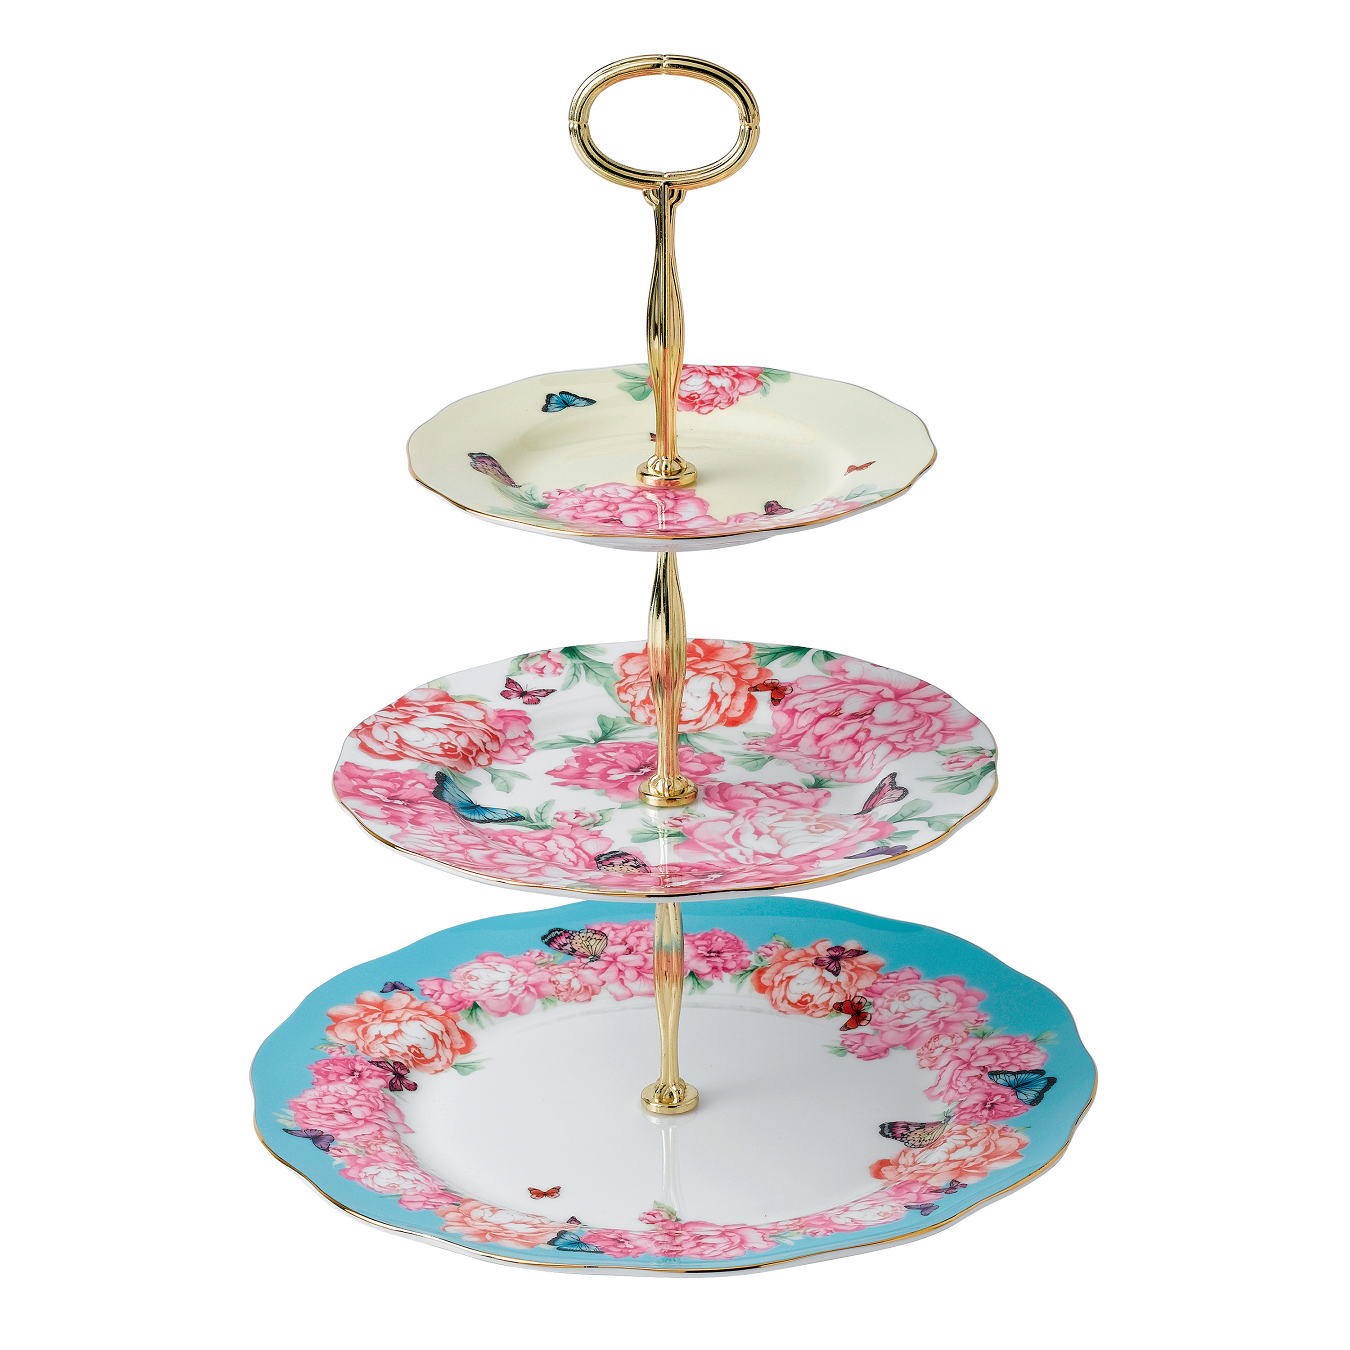 Miranda Kerr for Royal Albert 3 Tier Cake Stand